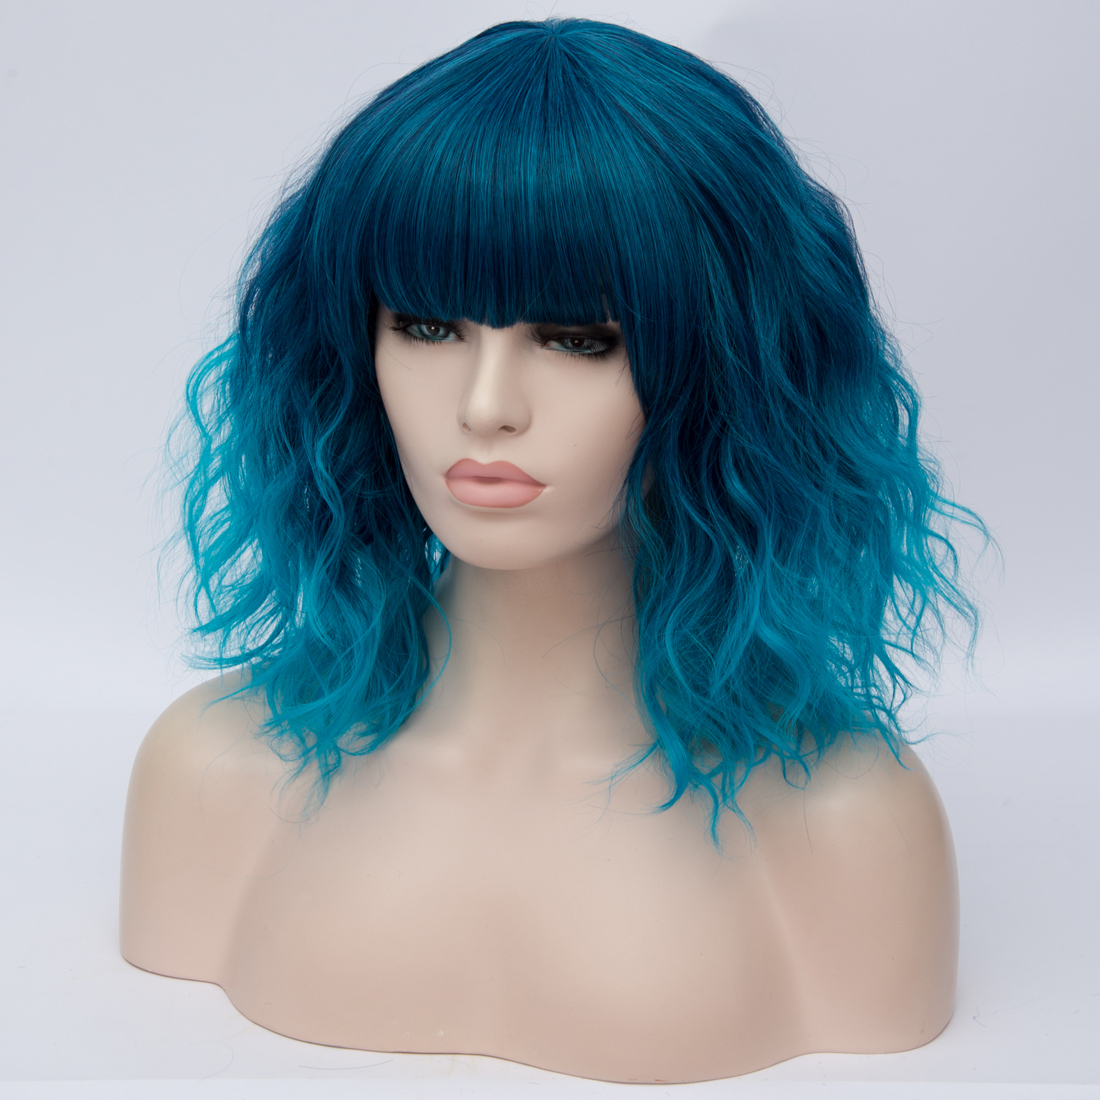 H571c237541ab4d86b99ba22feec15cd31 - Similler Short Synthetic Wig for Women Cosplay Curly Hair Heat Resistance Ombre Color Blue Purple Pink Green Orange Two Tones